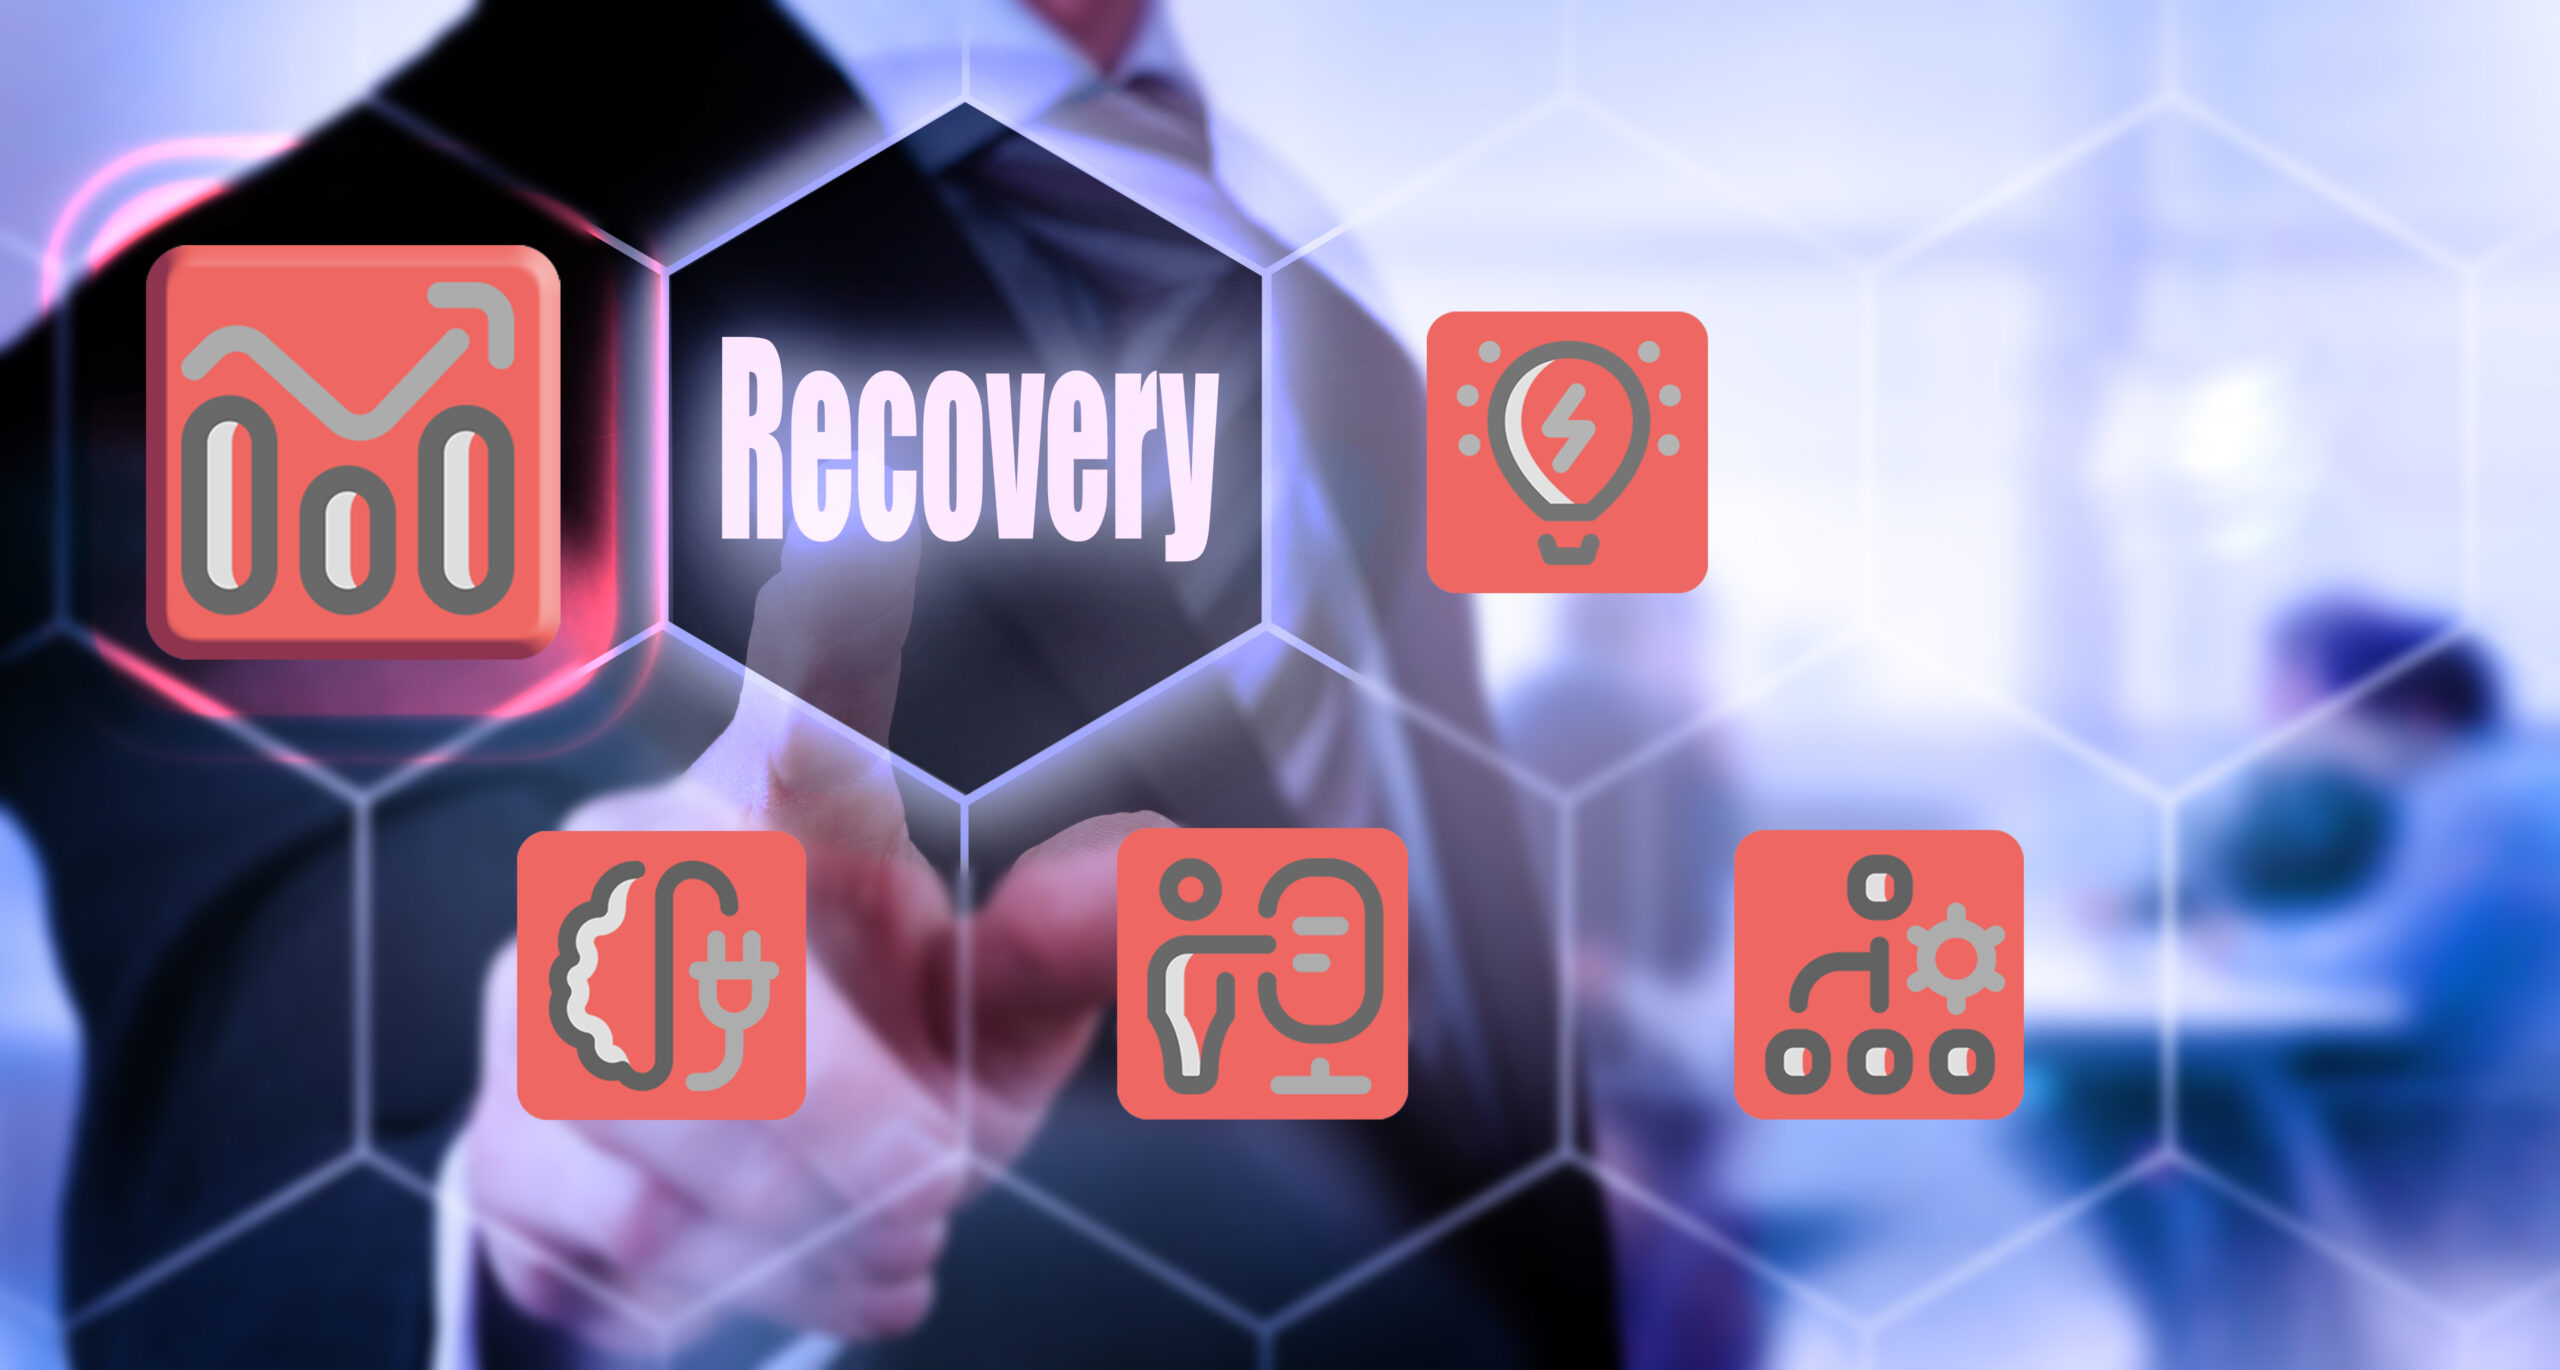 HOSPITALITY RECOVERY: Strategy and Growth